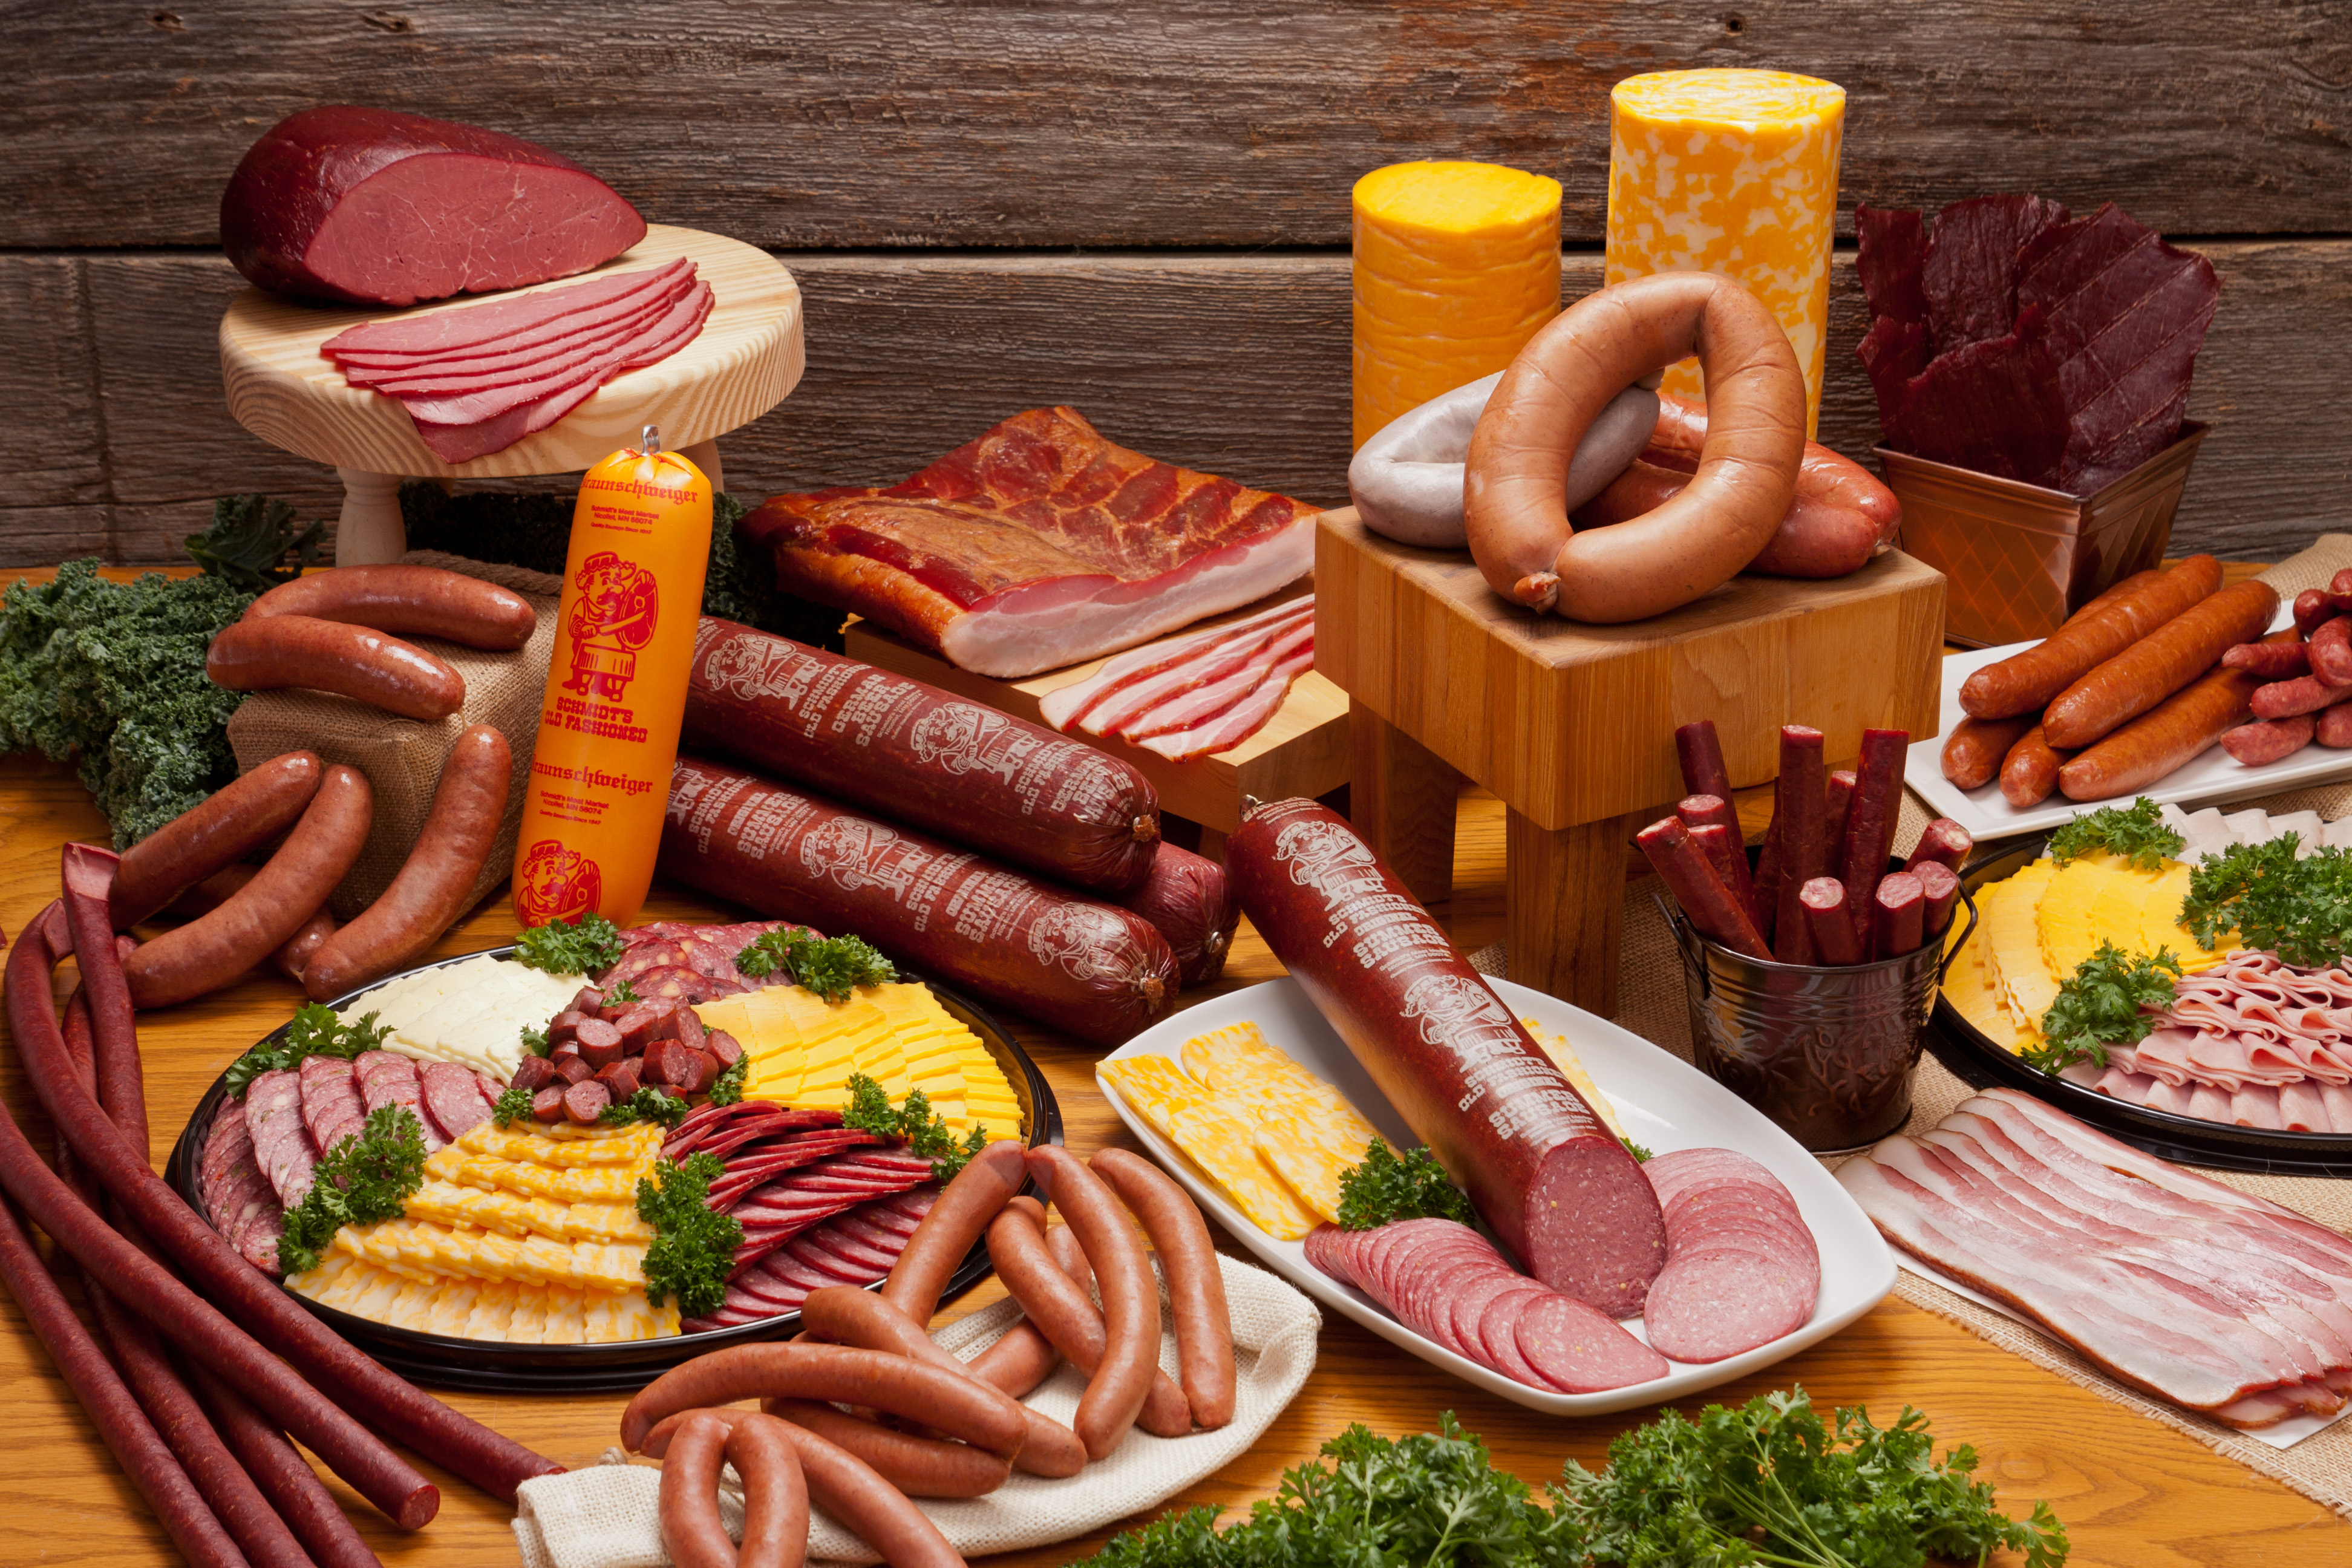 Are processed meats and even red meats carcinogens?